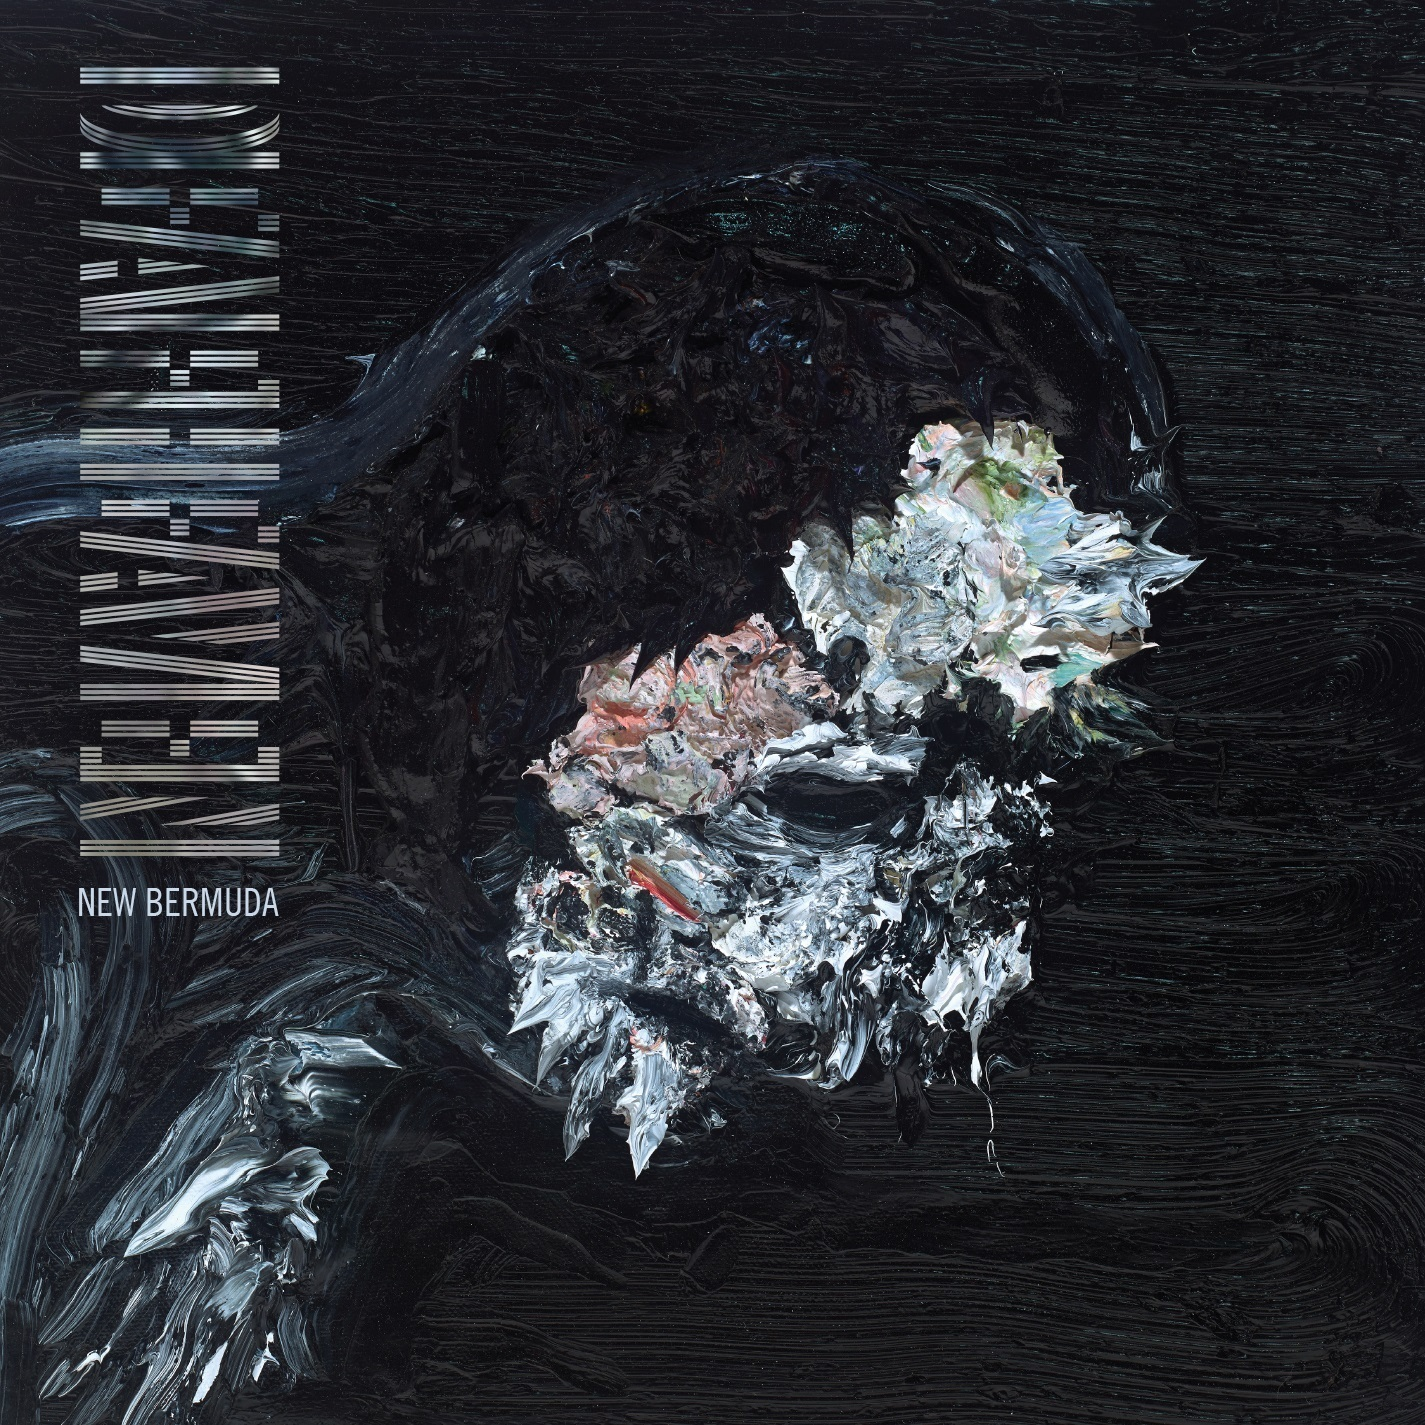 Review of 'New Bermuda', the new release by Deafheaven